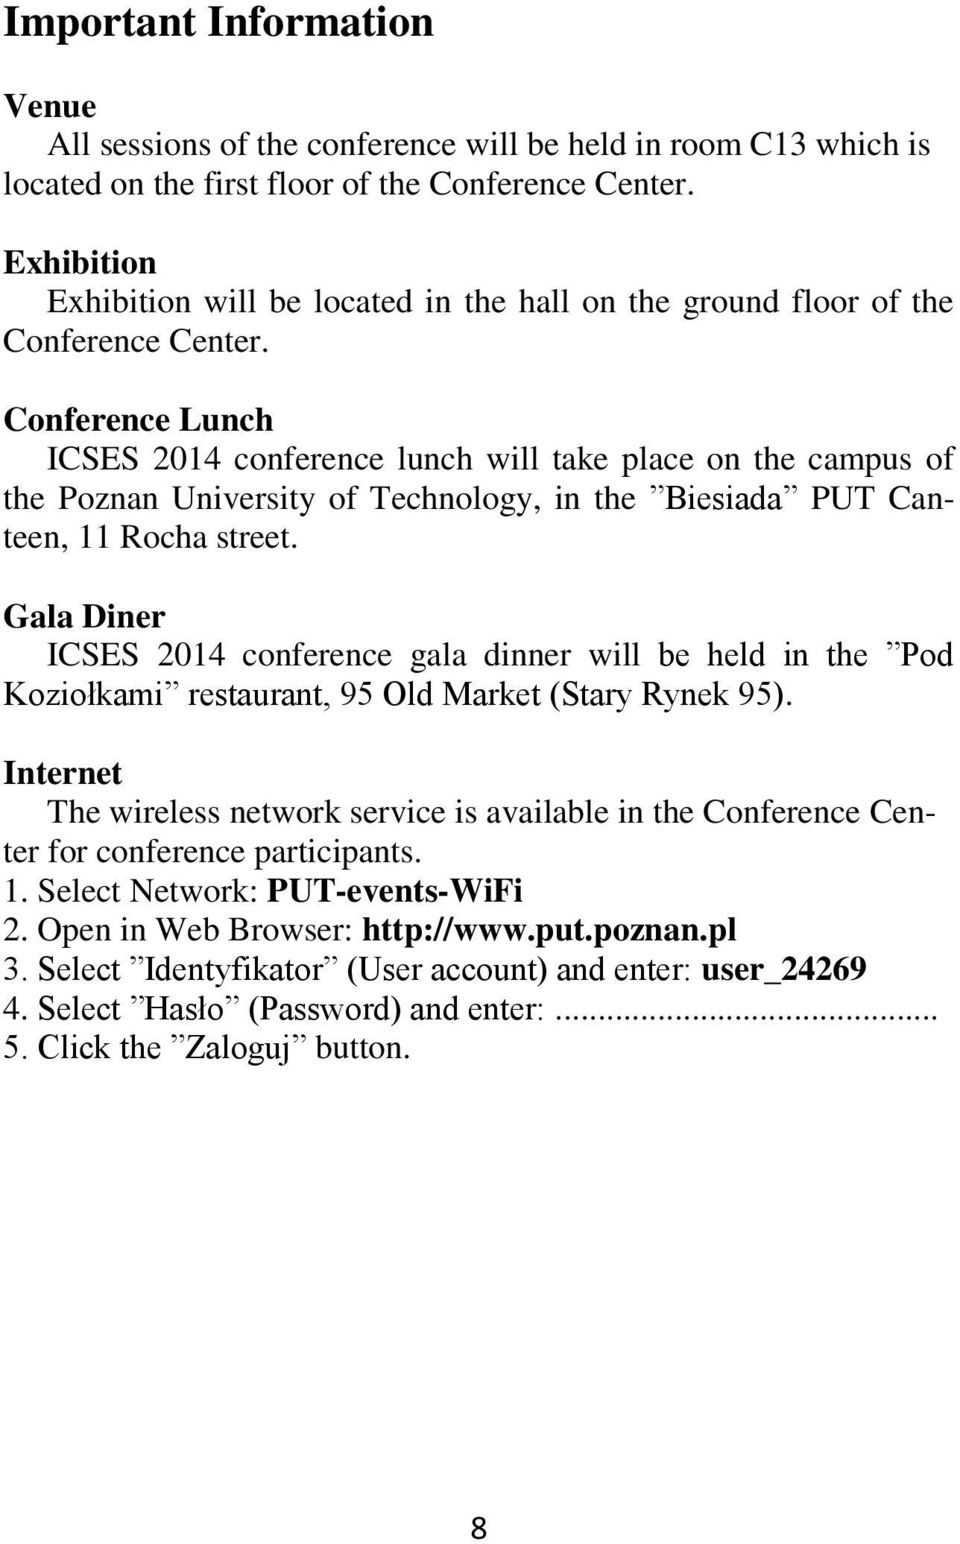 Conference Lunch ICSES 2014 conference lunch will take place on the campus of the Poznan University of Technology, in the Biesiada PUT Canteen, 11 Rocha street.